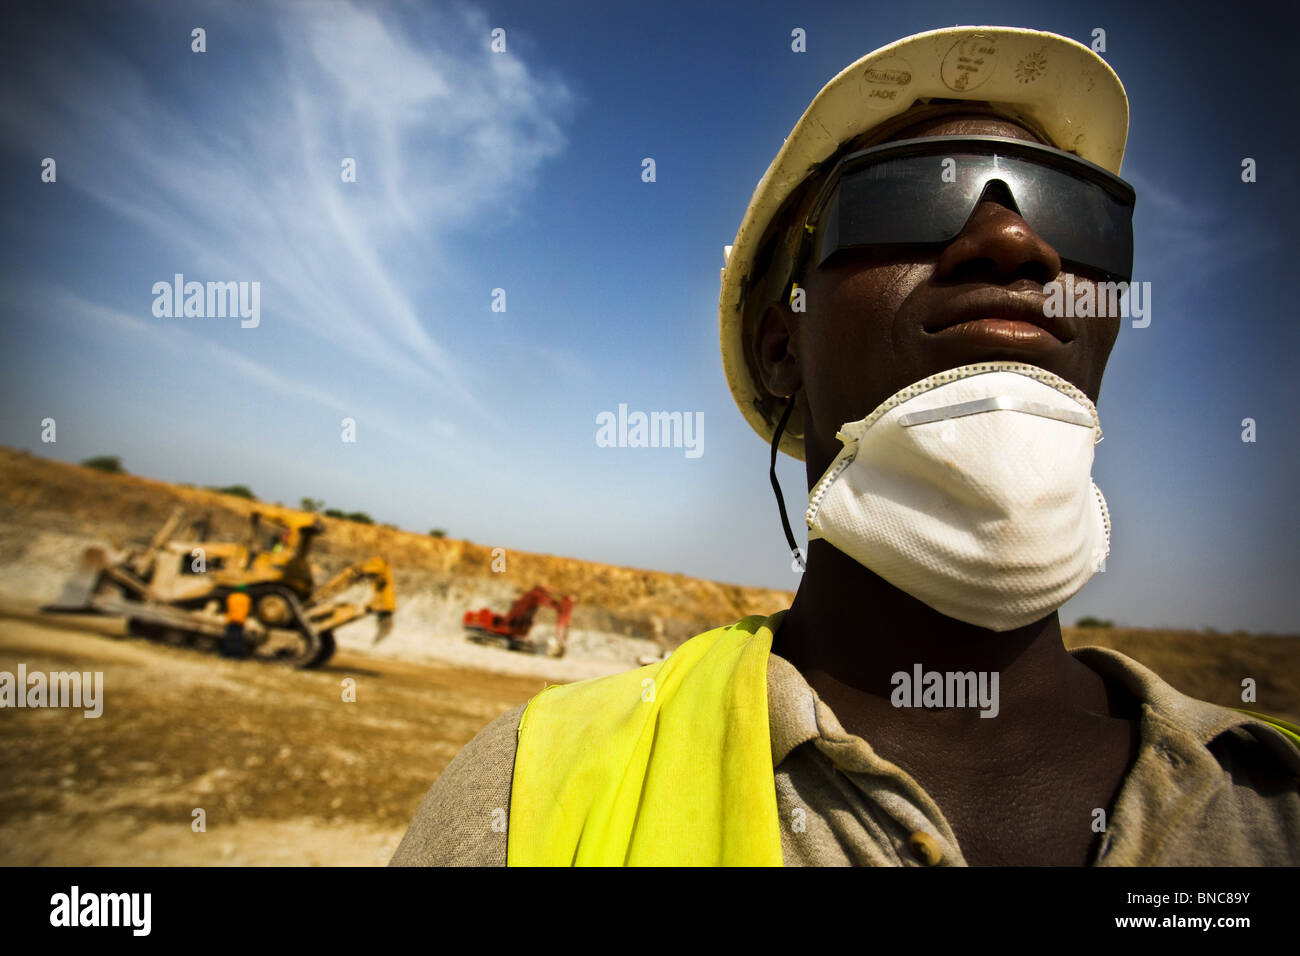 A mine worker watches over excavation operations in the main pit of the Youga gold mine - Stock Image